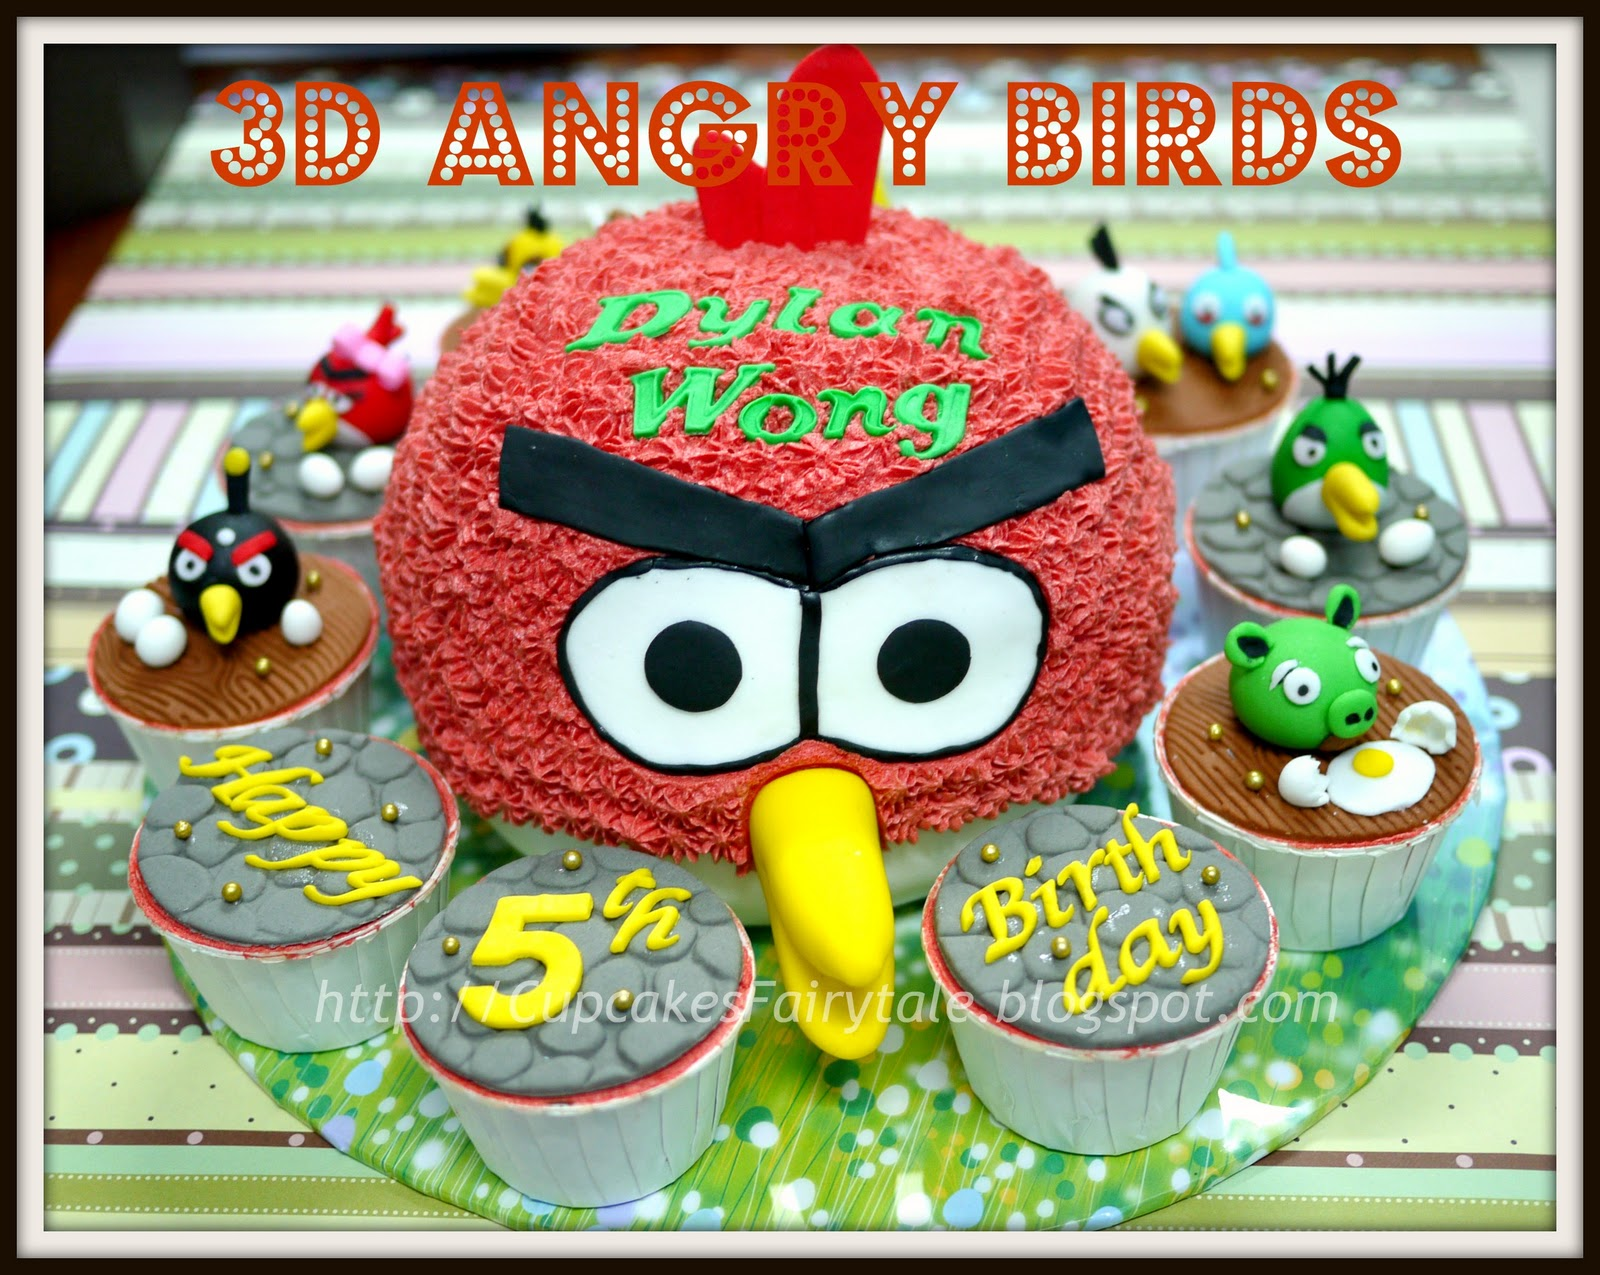 Cupcakes Fairytale DYLAN WONGS 5TH BIRTHDAY CAKE ANGRY BIRDS THEME